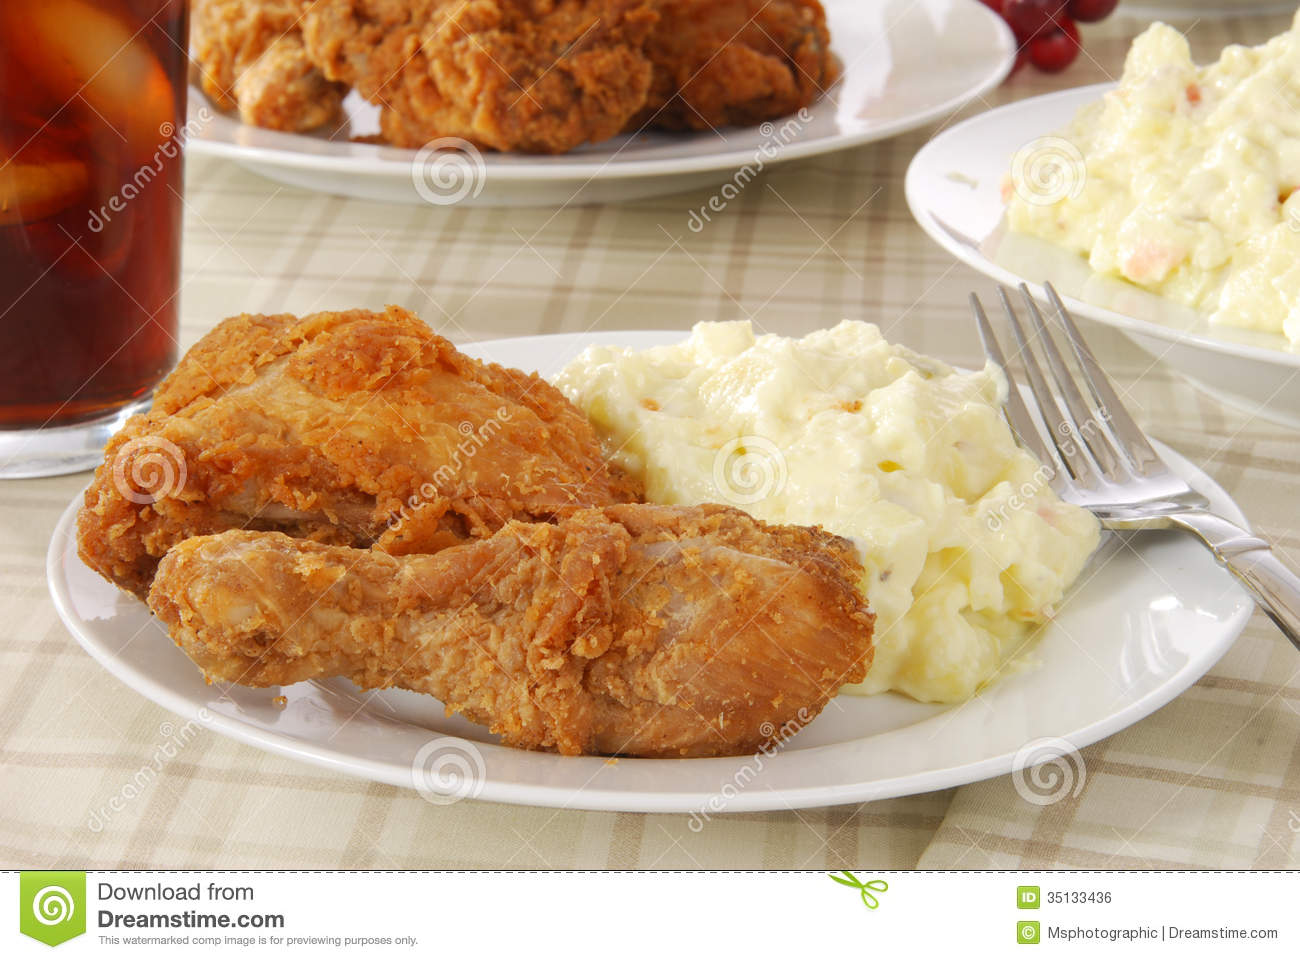 Fried Chicken And Potato Salad Royalty Free Stock Image ...